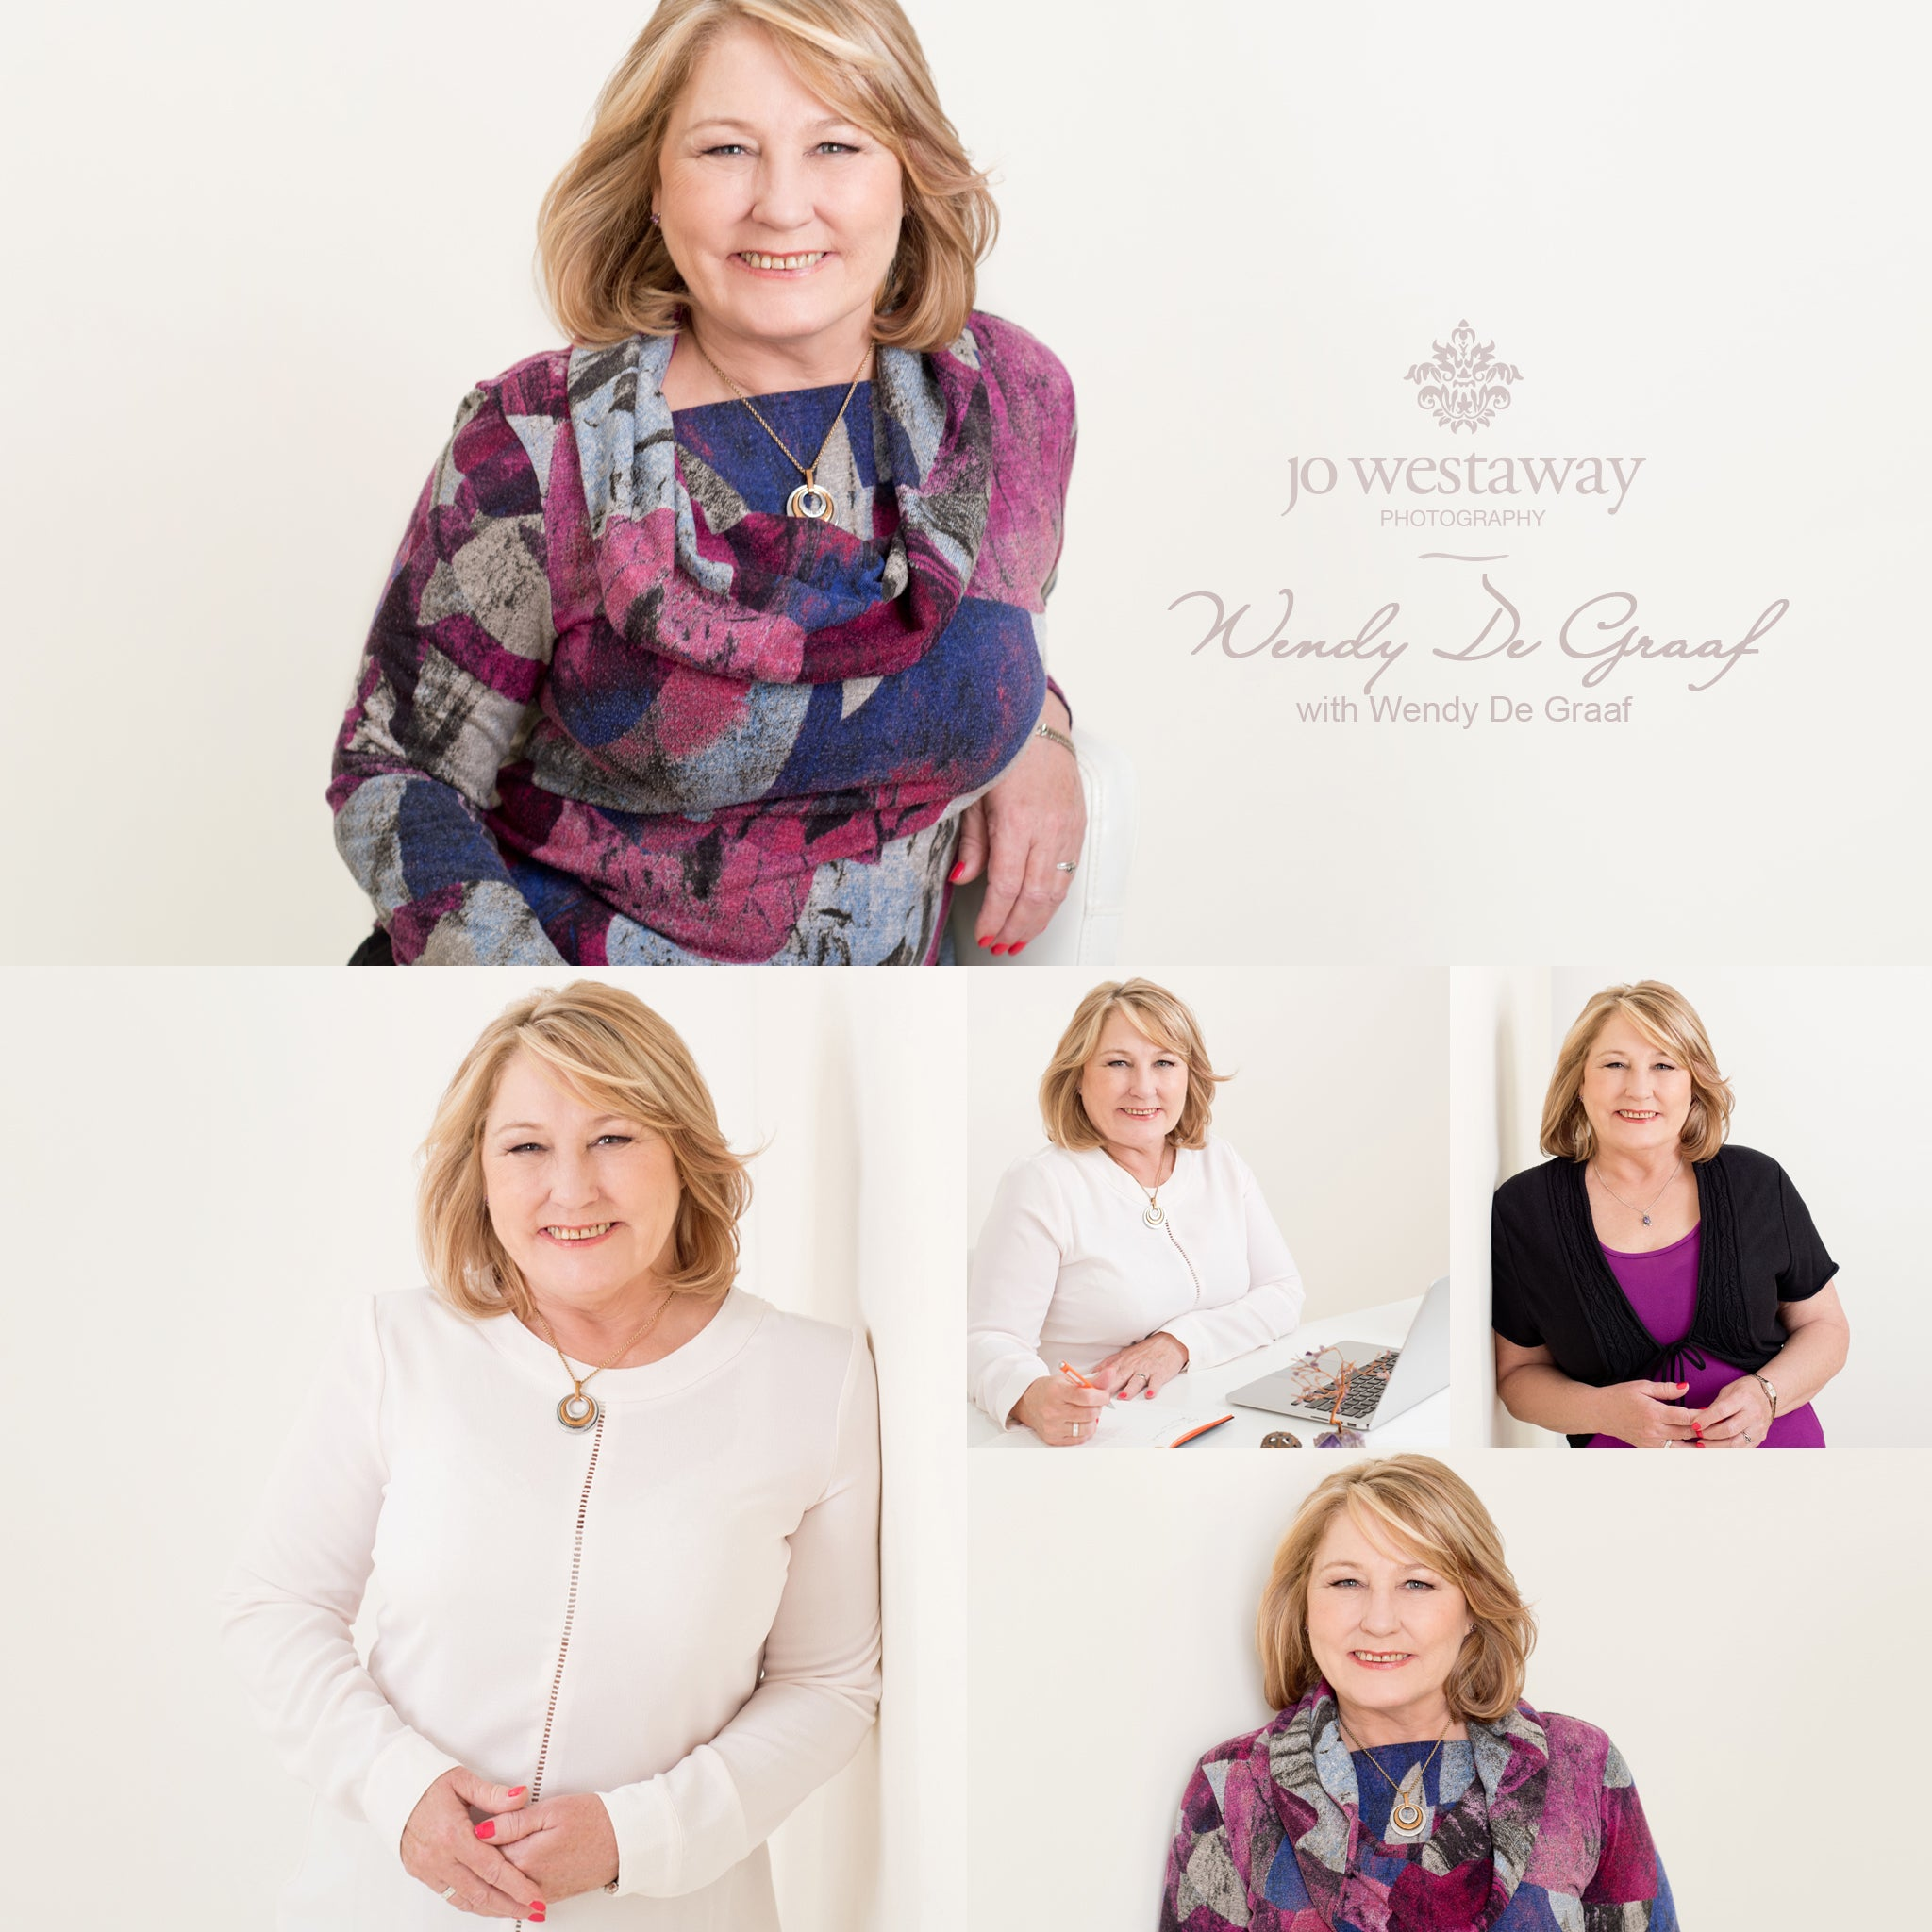 On-brand headshots and personal brand photos - took confident and win customers